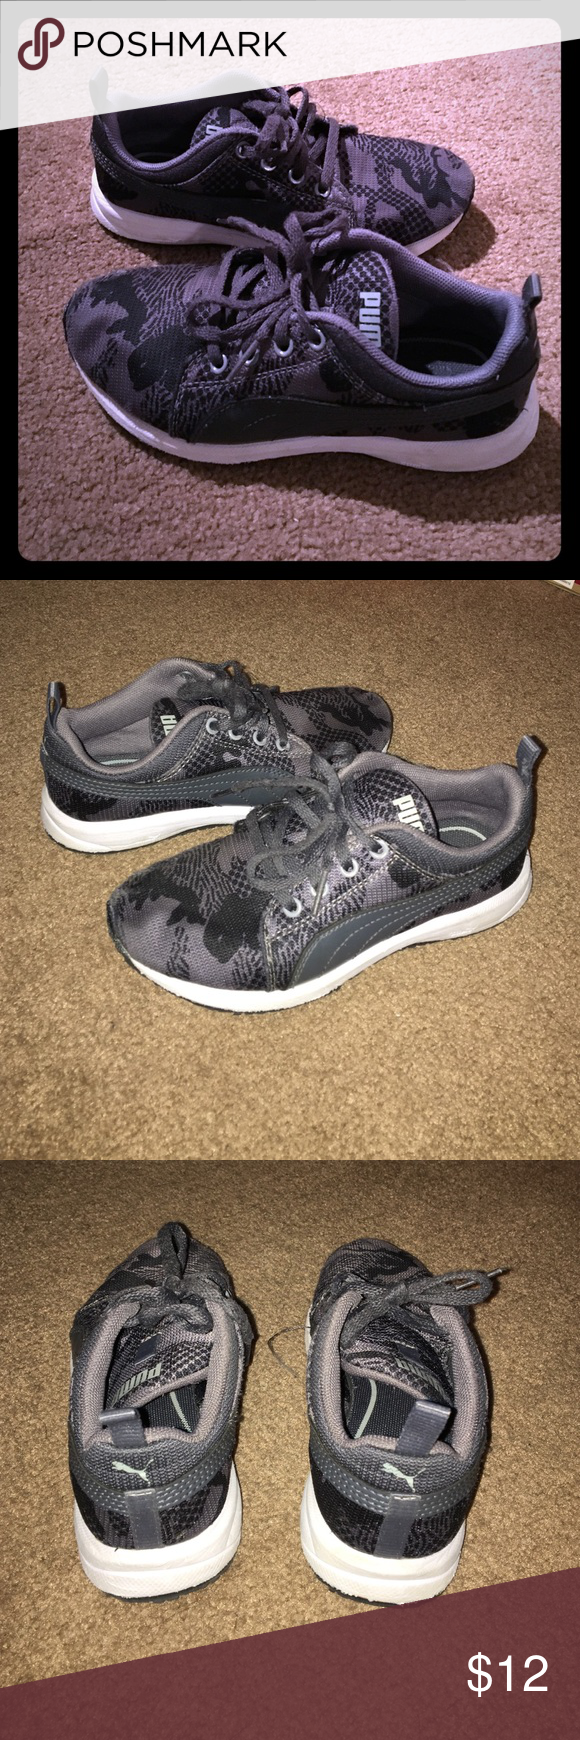 Boys gray and black Puma sneakers Good used condition see photo #4 for wear spots on front. These are so cute and unique Camo design and cleaned up. Still lots of play left! Puma Shoes Sneakers